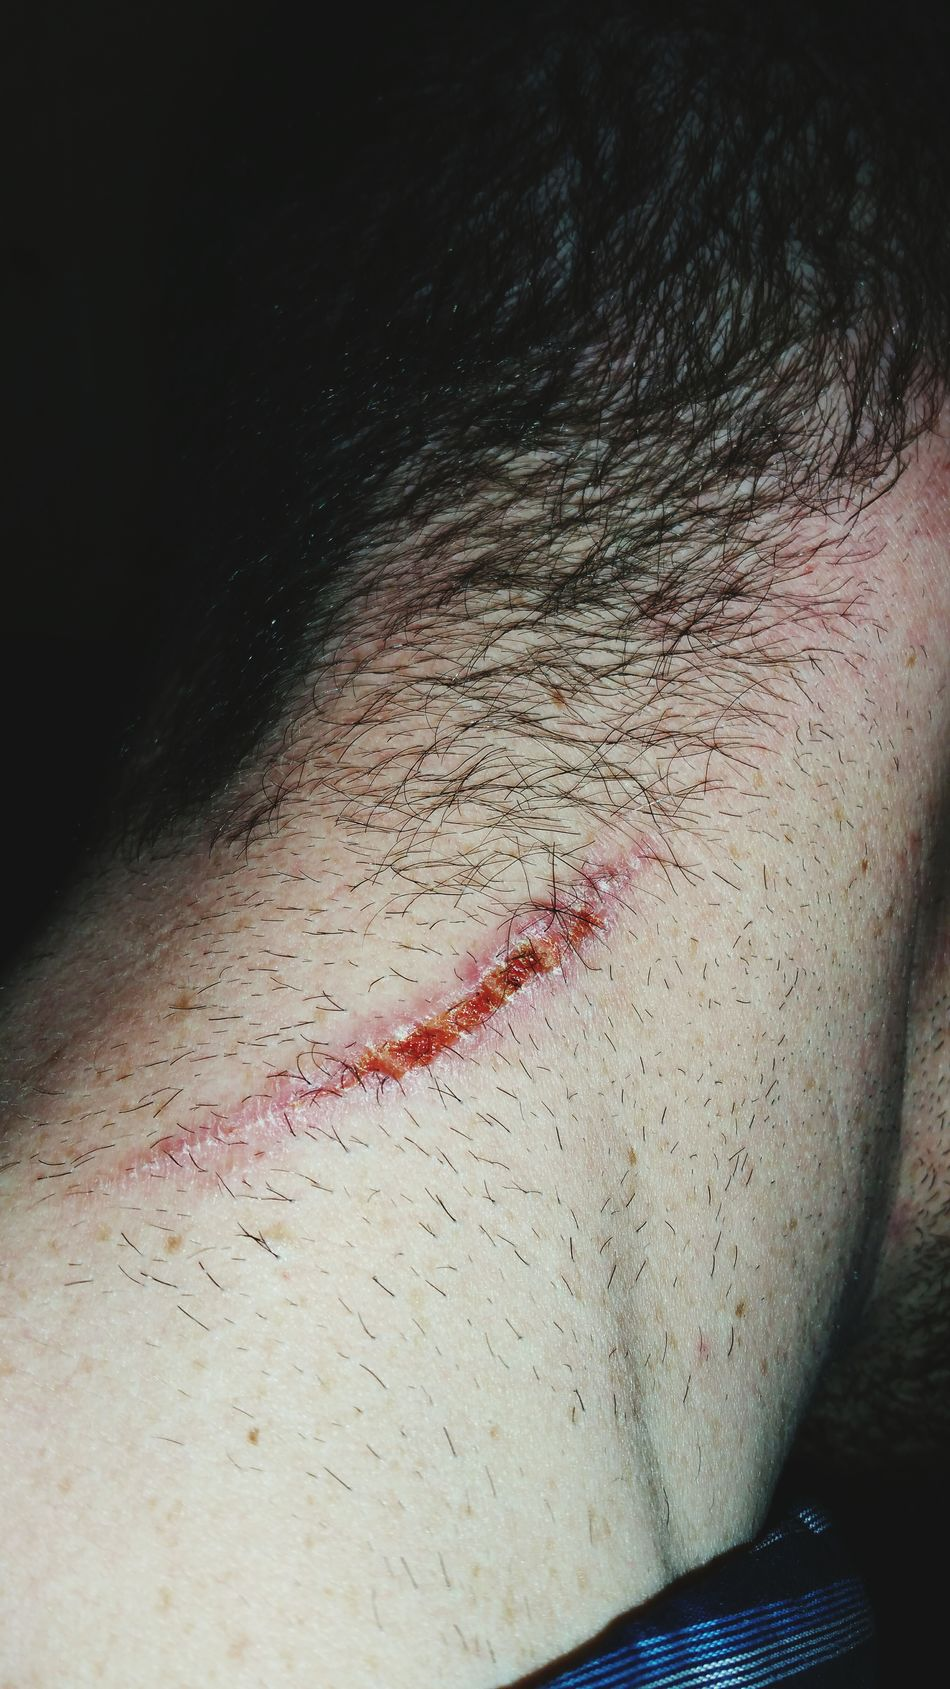 Wounded Booboo Scabs Scab Scar Wound People Adult One Person Human Body Part Close-up